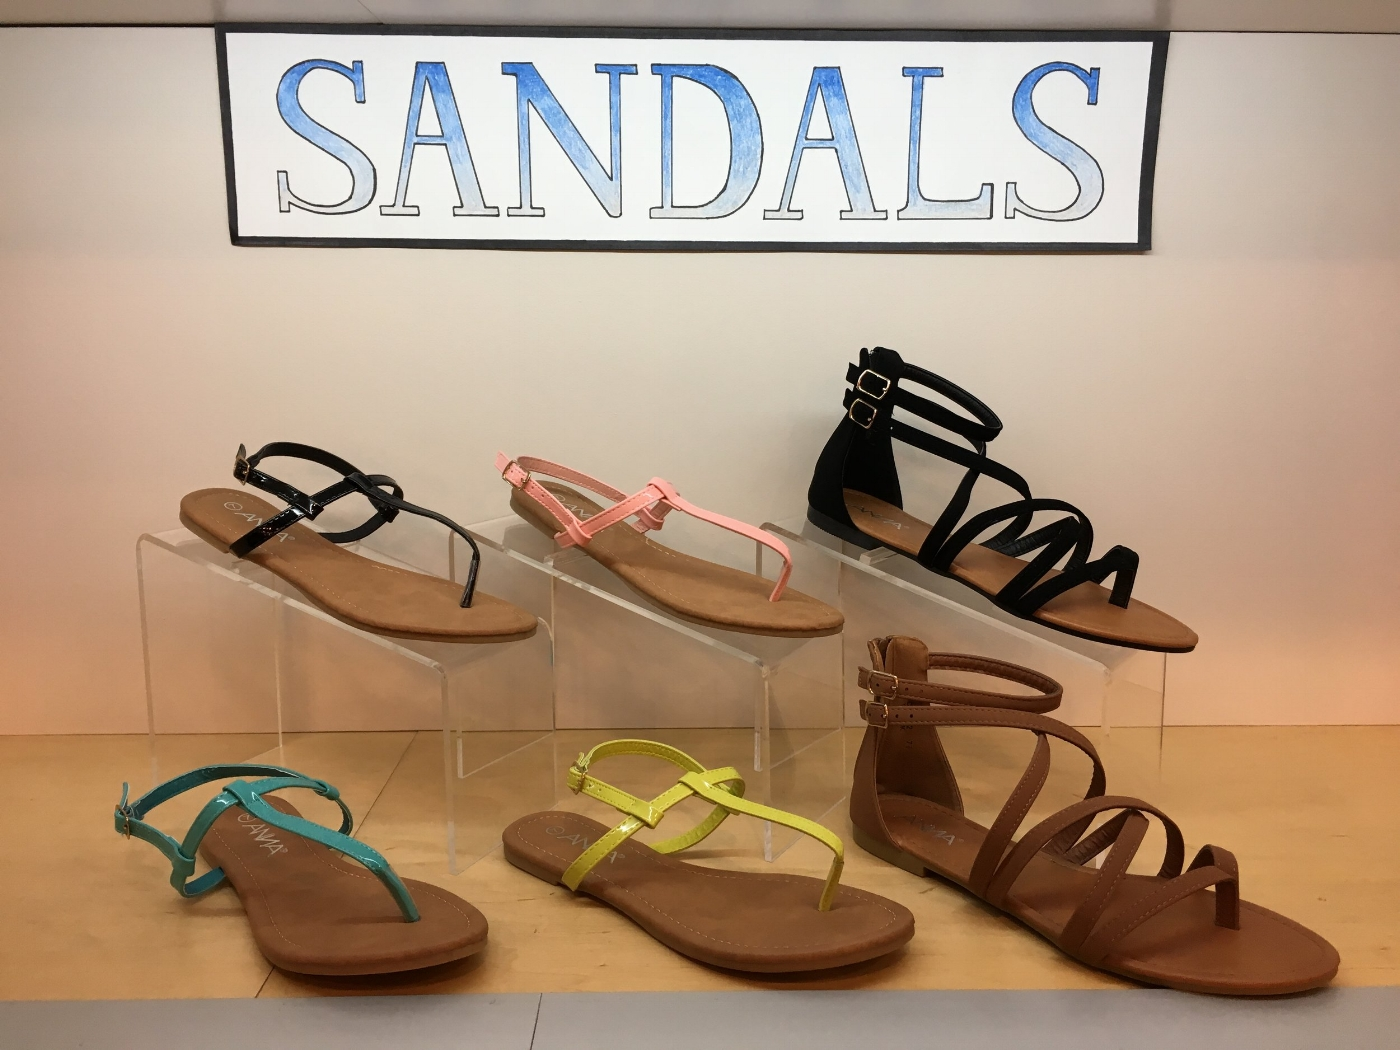 shoe dept. sandals square.JPG